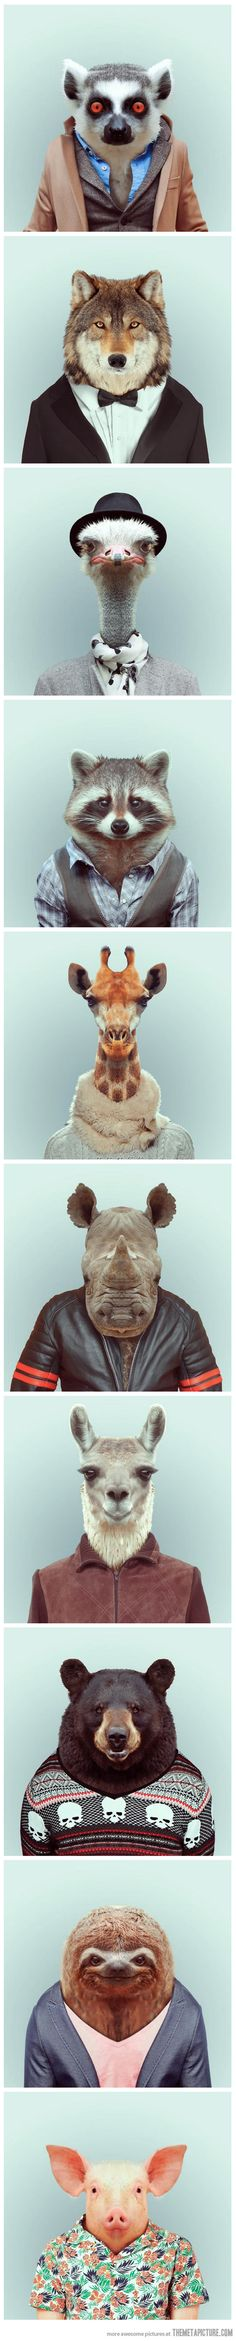 Funny portraits of animals dressed like humans… Maybe I've been watching too much Shameless but I look at the first one and just see Justin Chatwin.